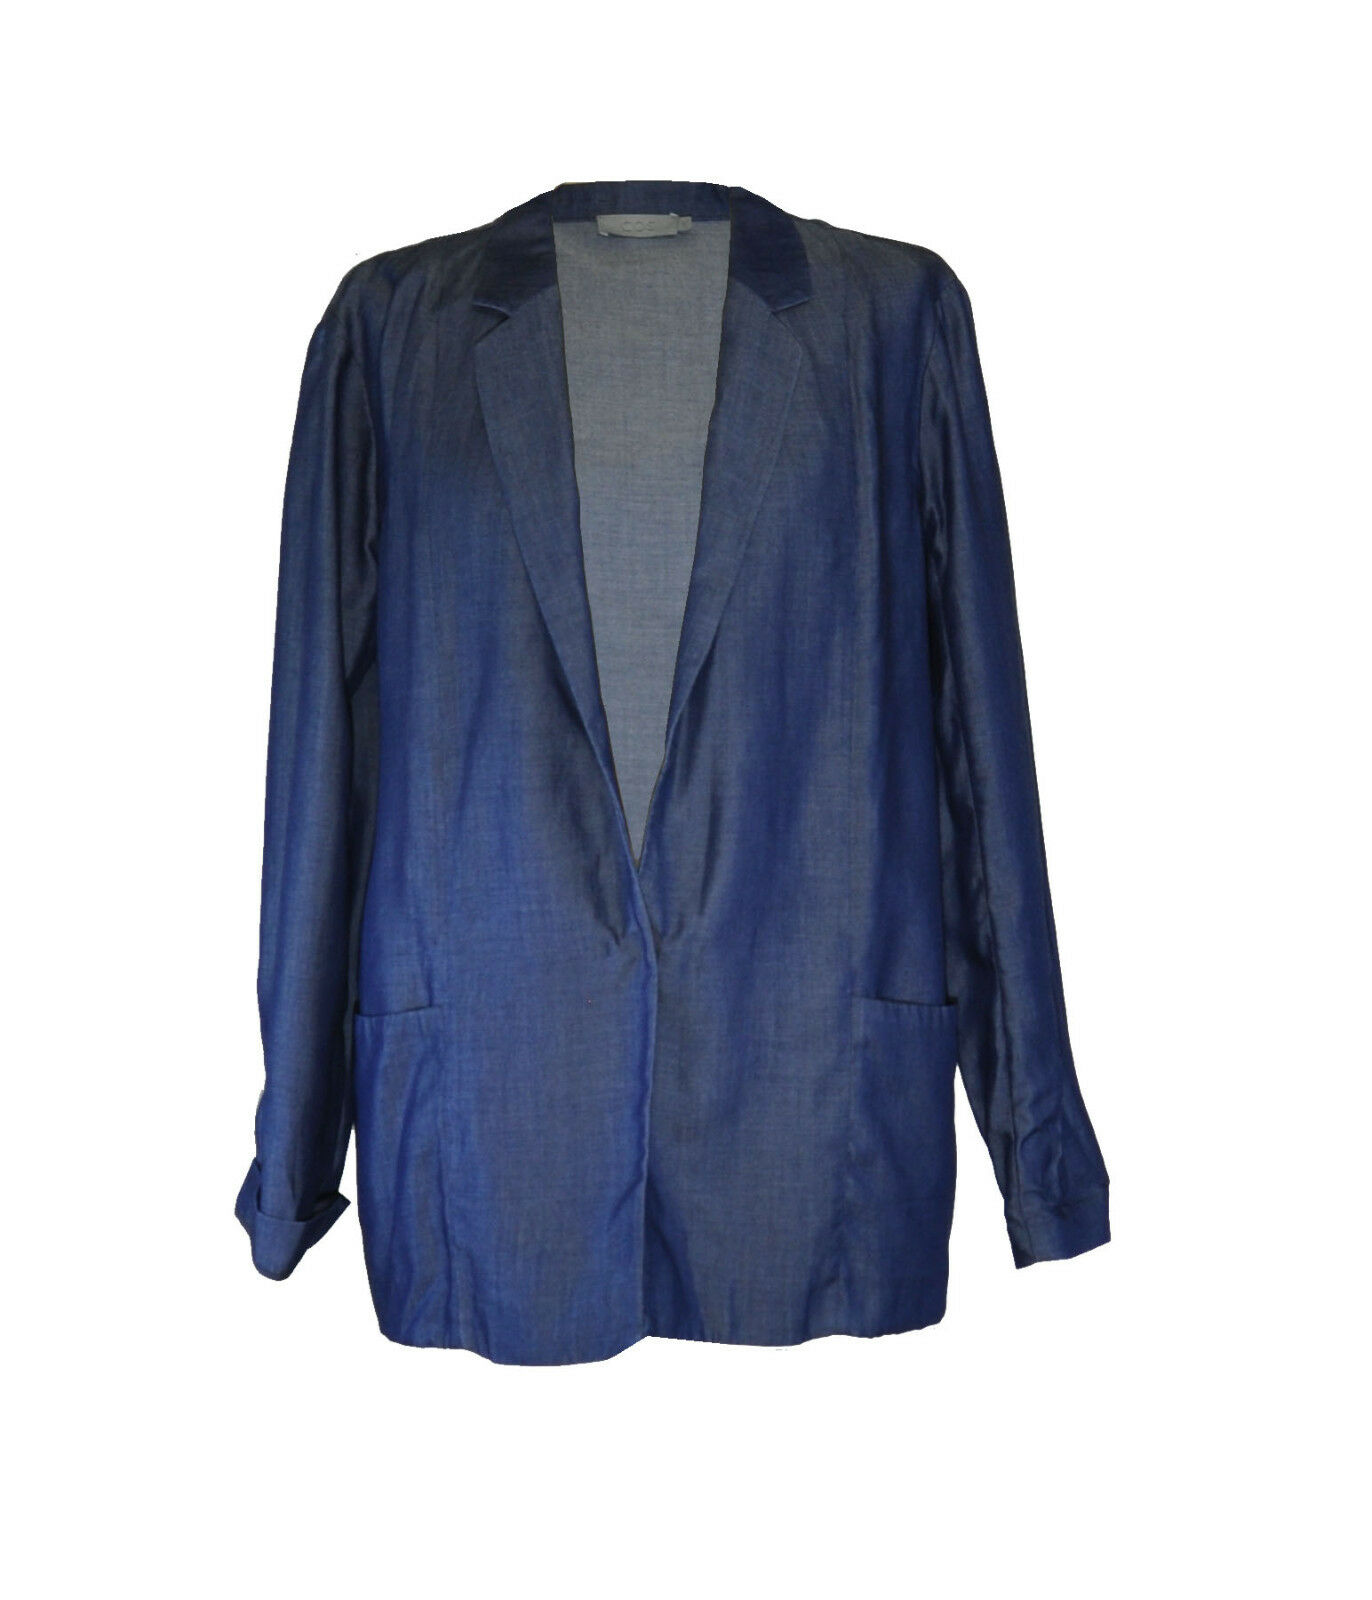 COS  Soft bluee Long Line Blazer  40  Tencell Lyocell